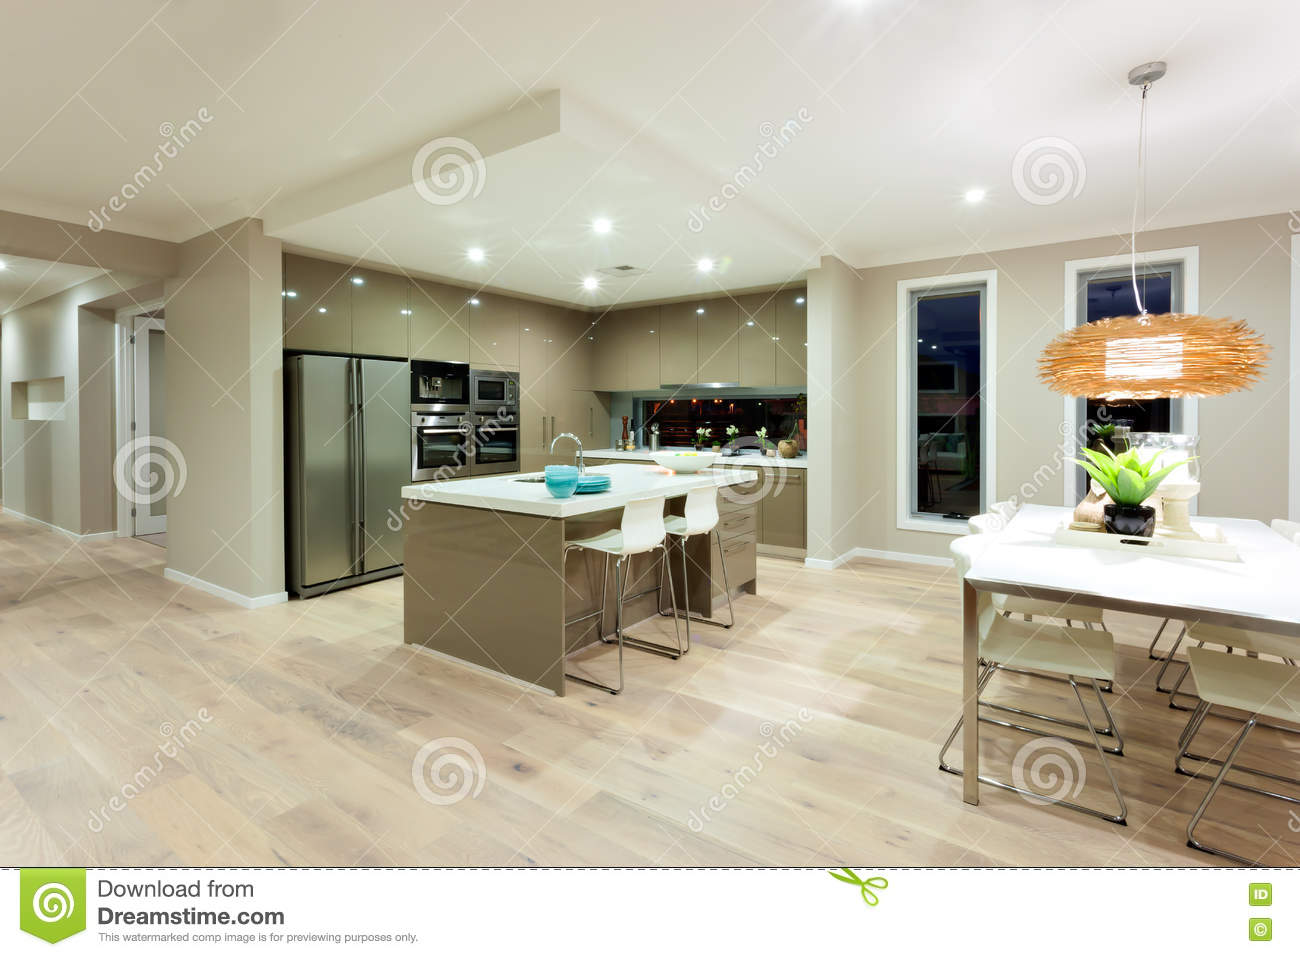 Modern kitchen and dinning area interior view of a modern house